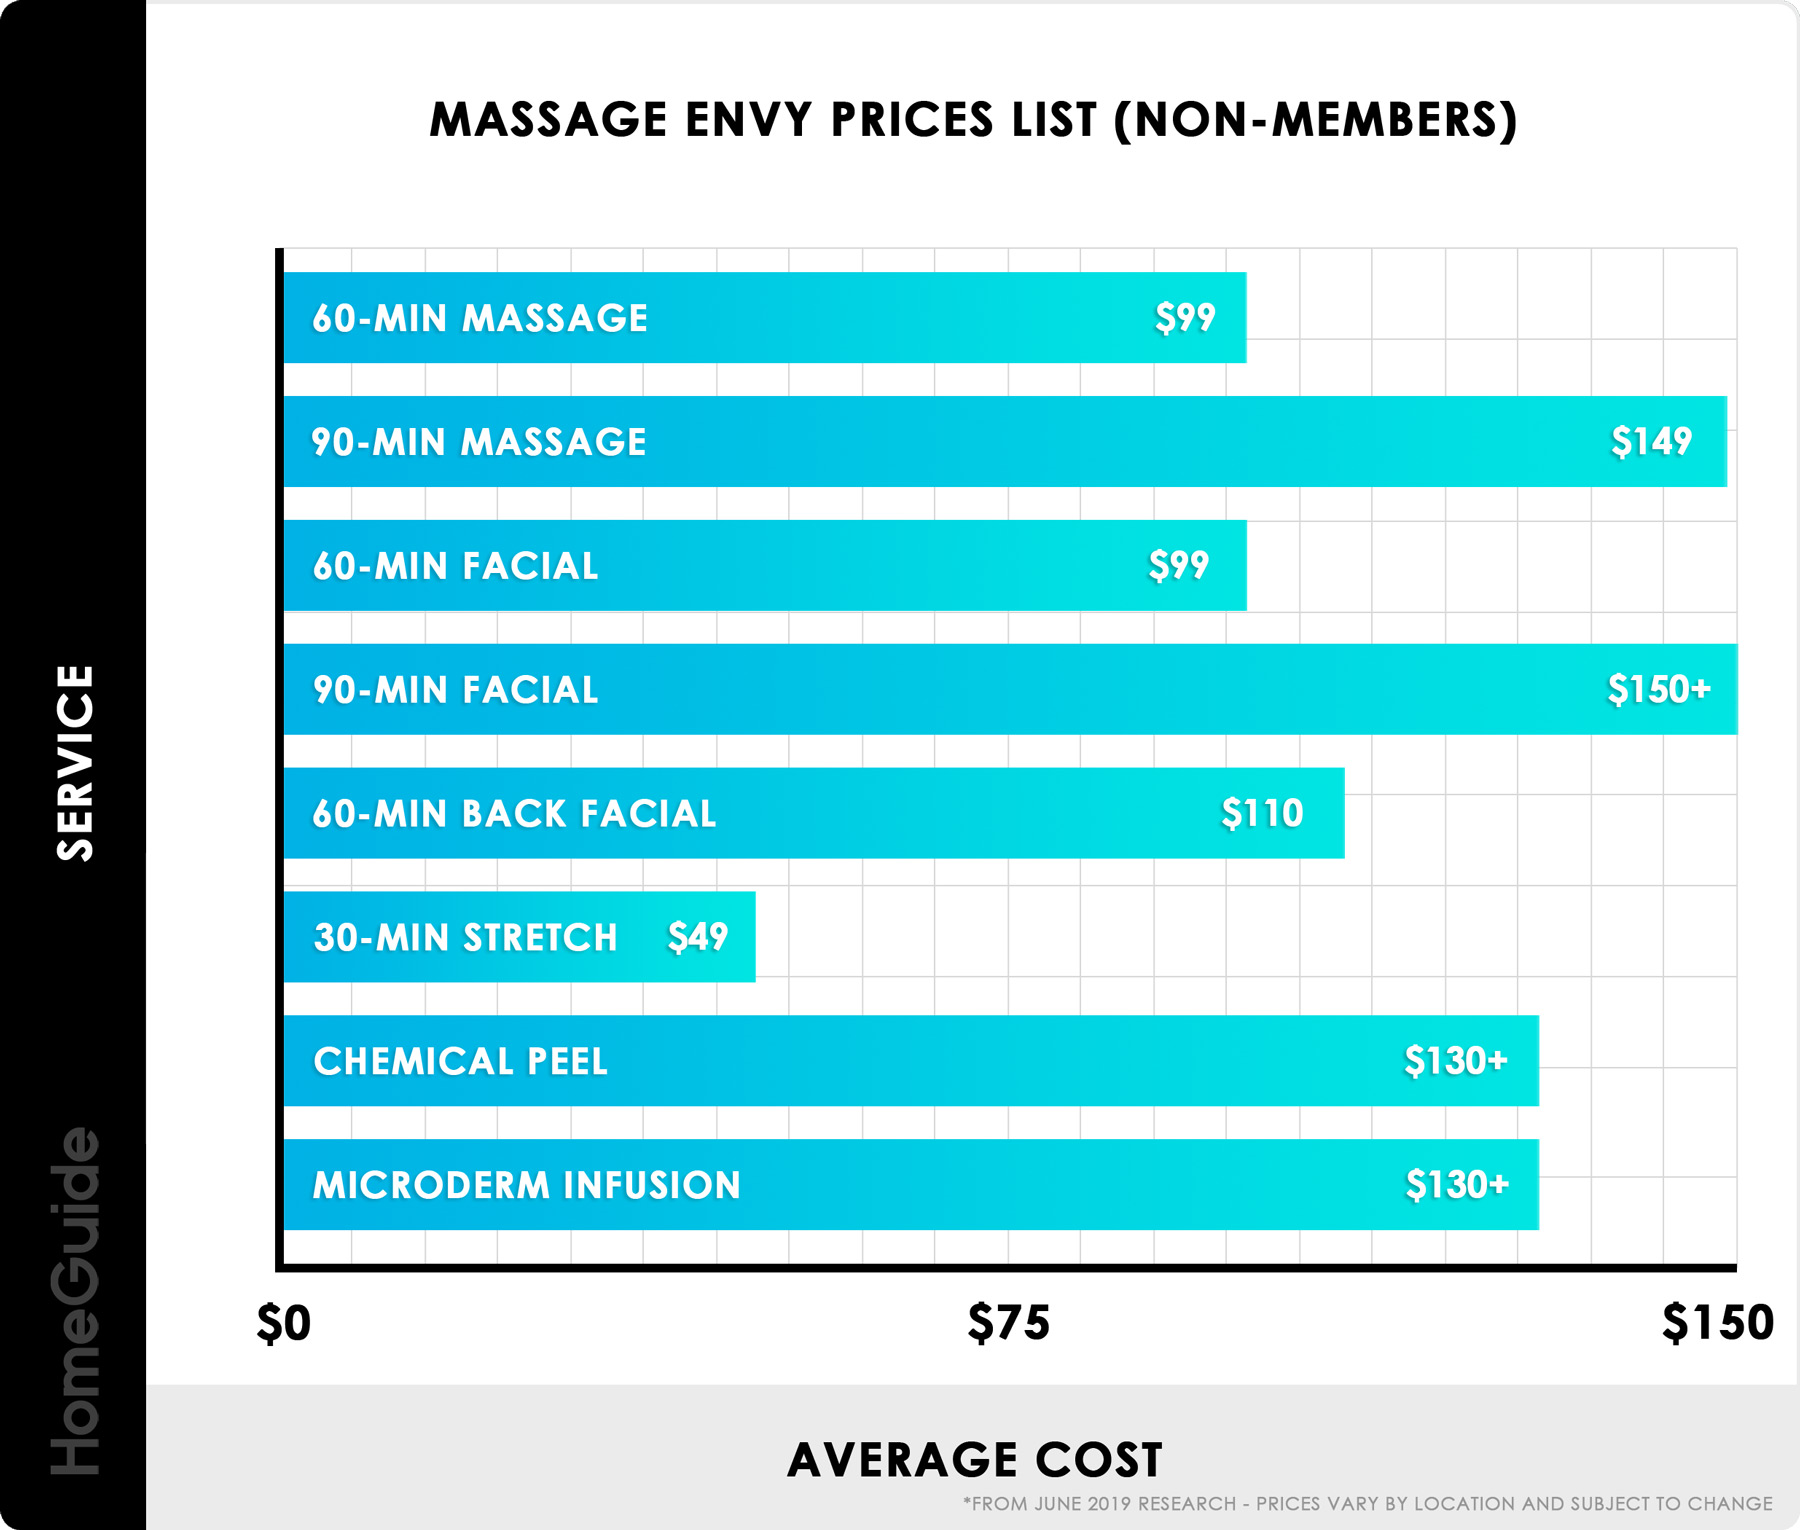 2019 Massage Envy Prices - Membership Cost & Price List